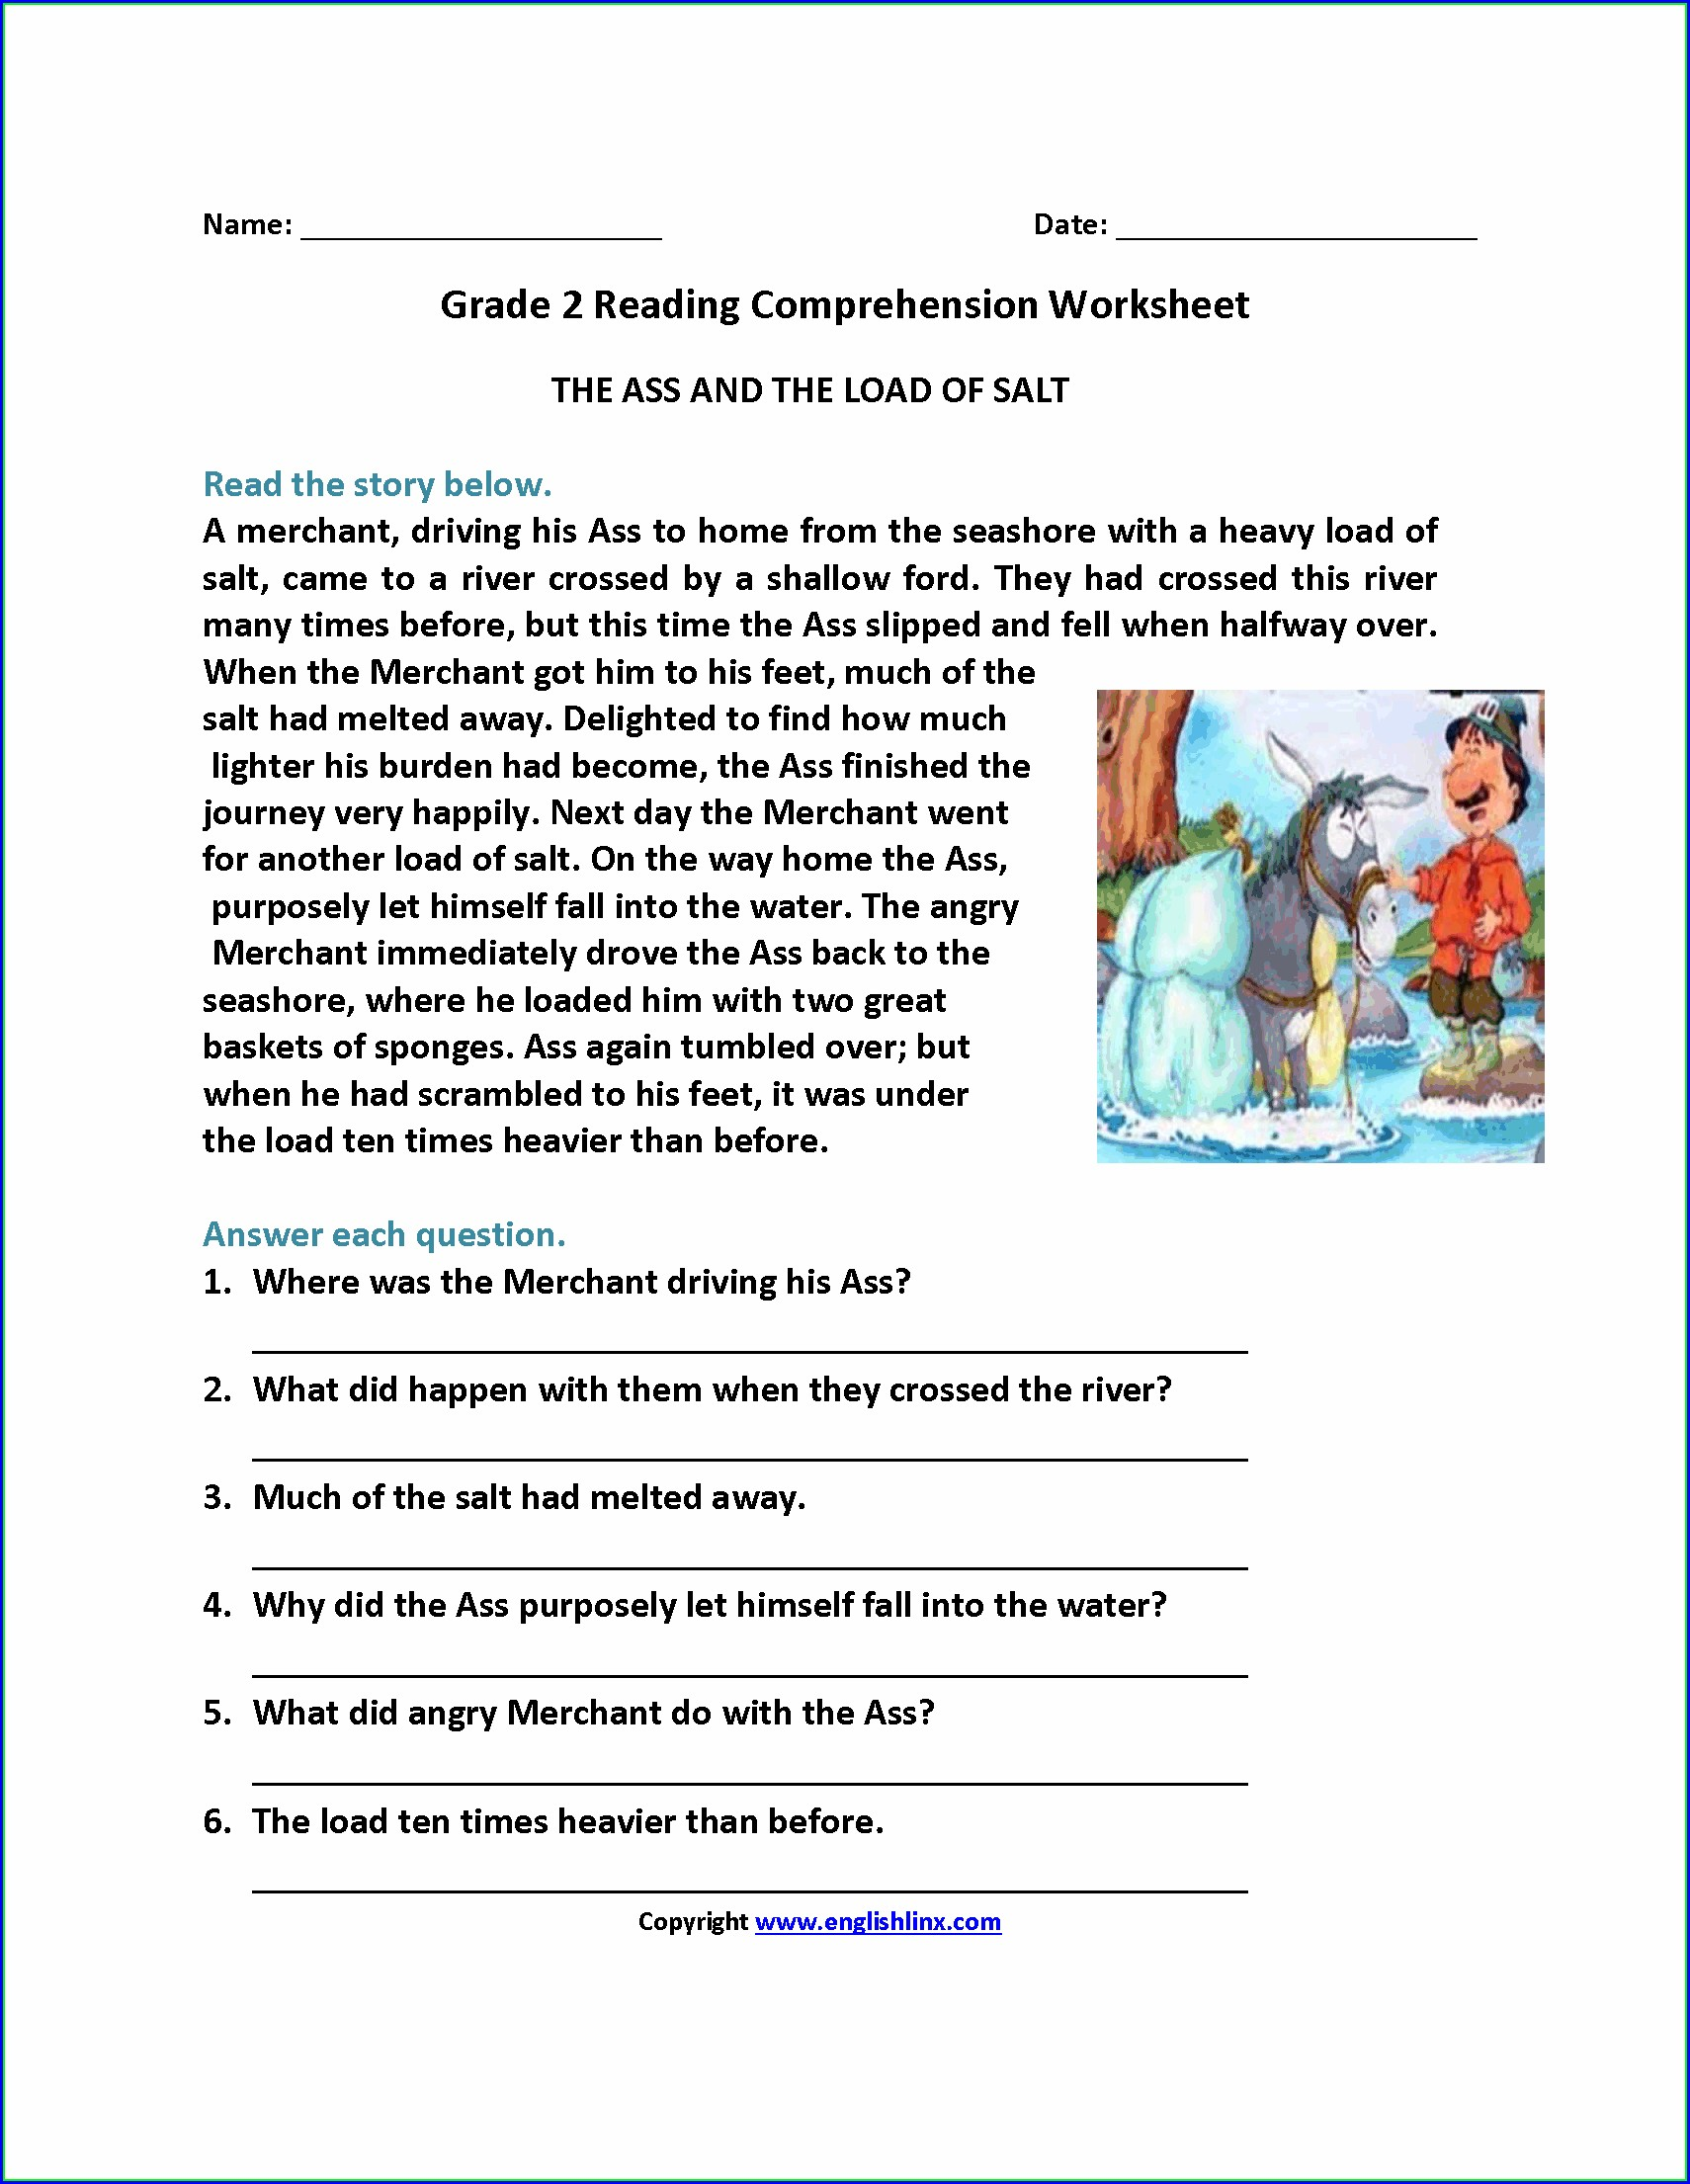 Worksheet For Second Grade Reading